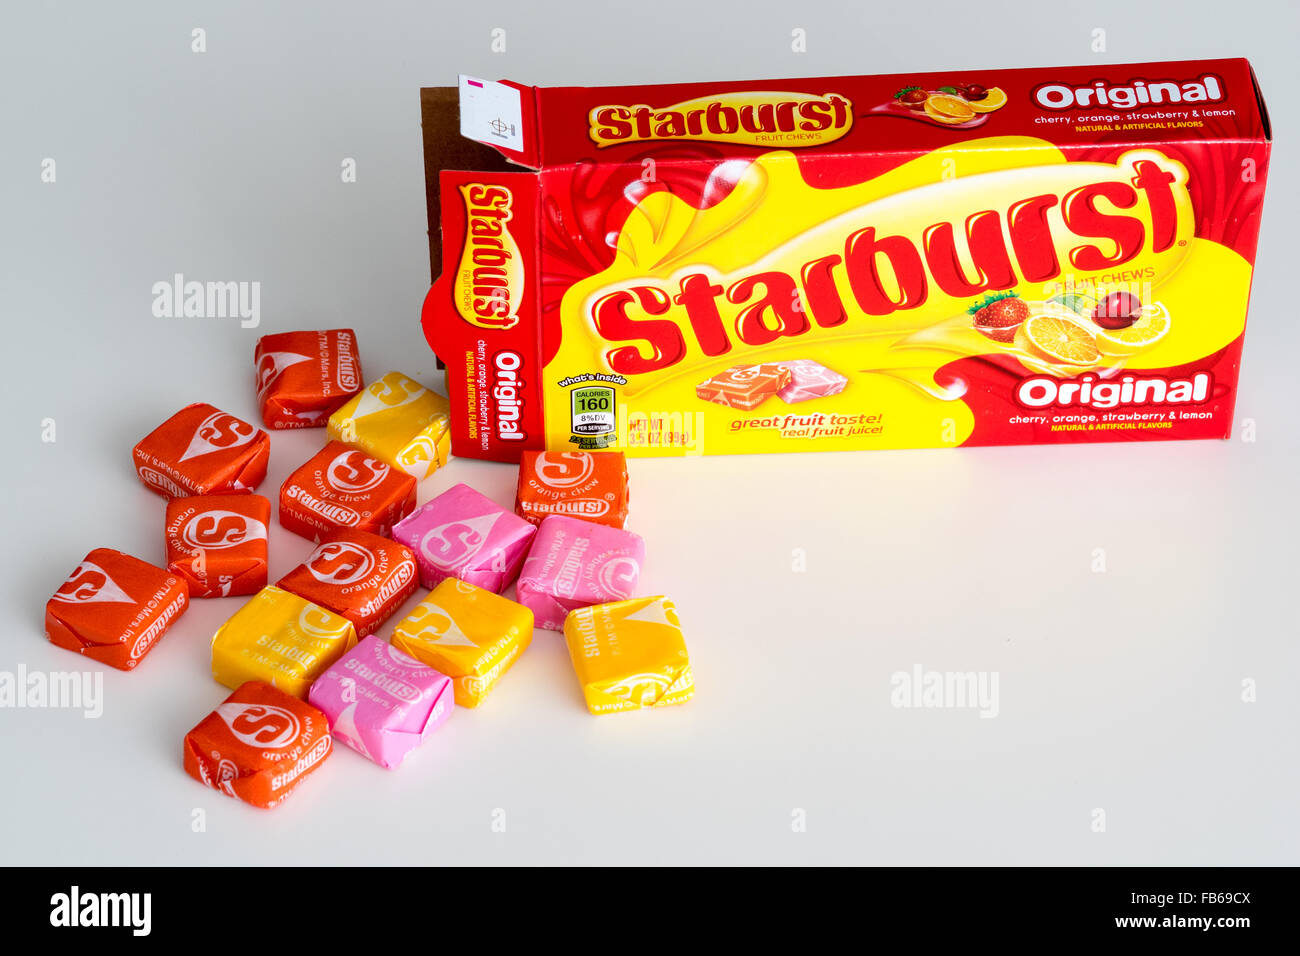 A box of Starburst candy, a fruit-flavored candy manufactured by the Wrigley Company. - Stock Image